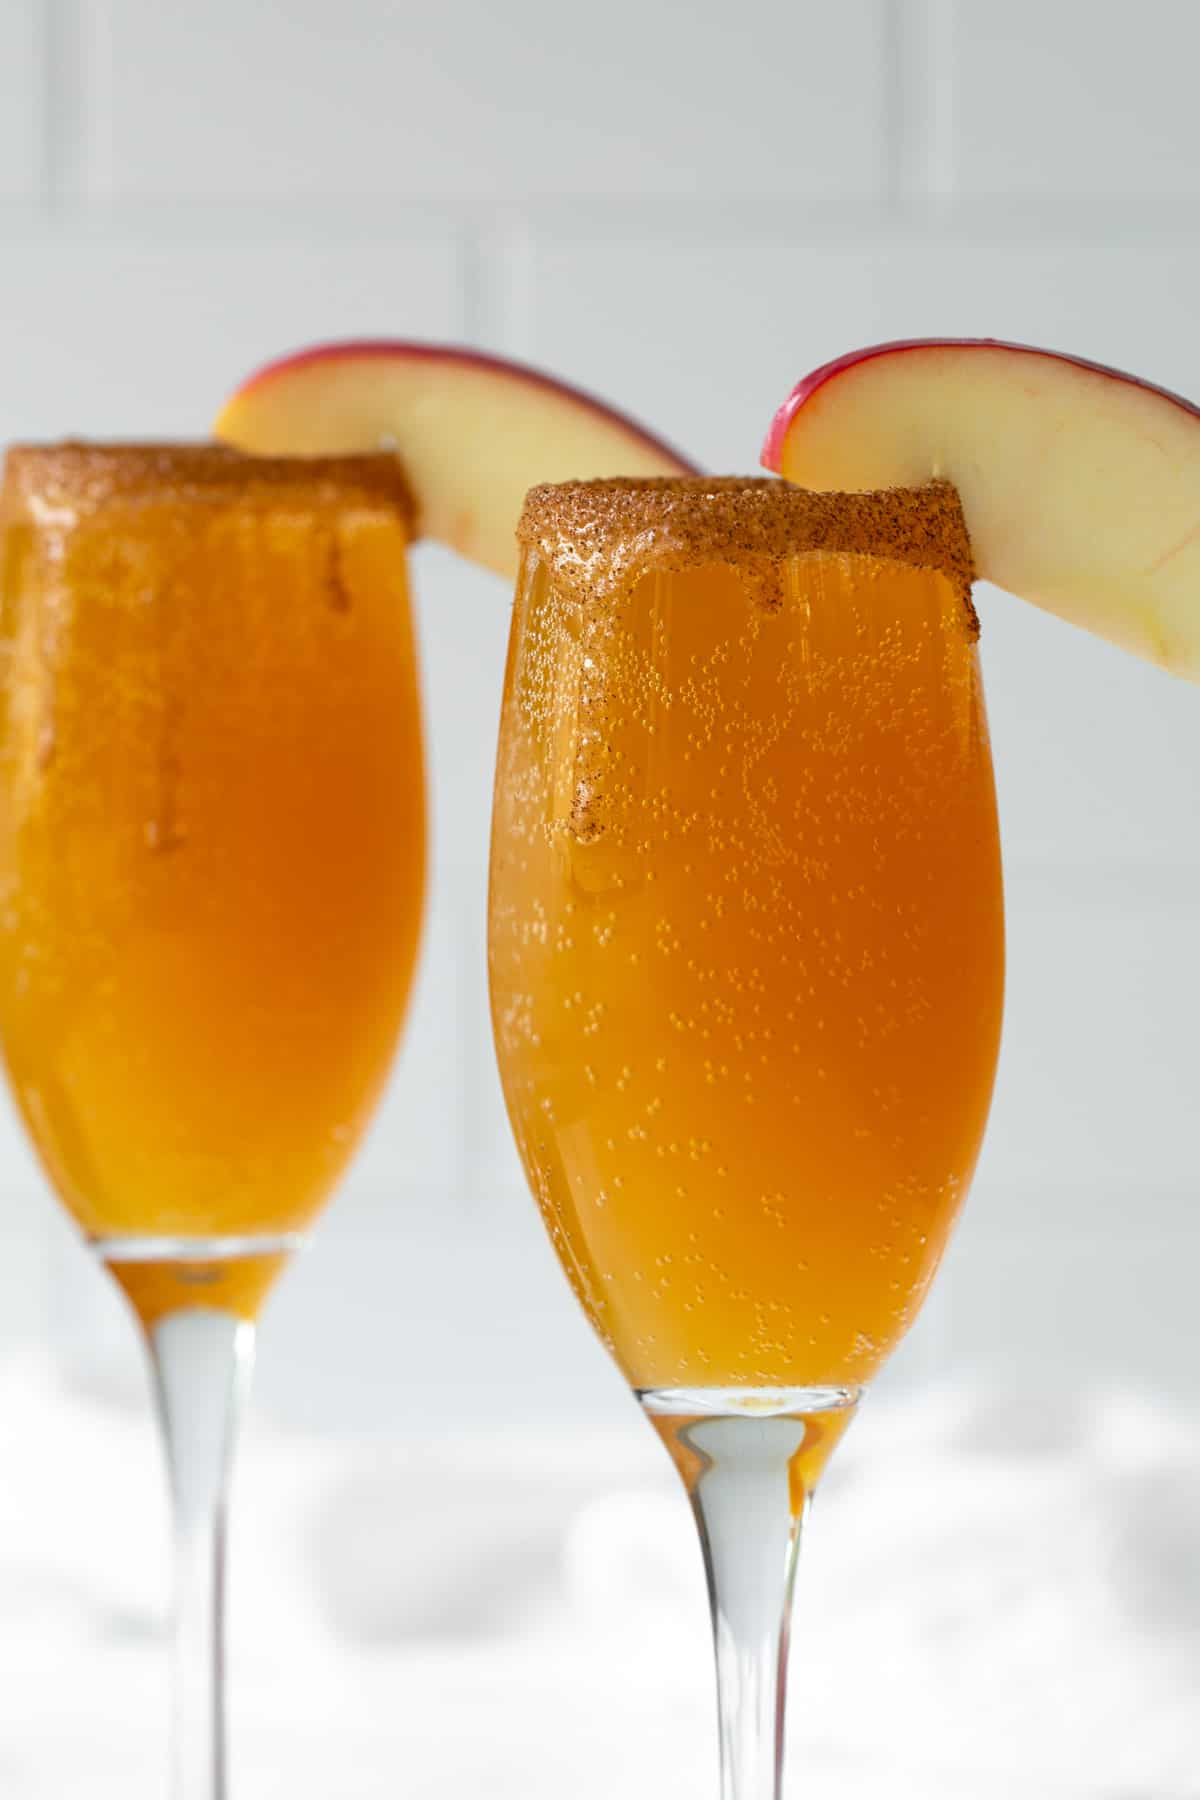 Closeup view of two caramel apple mimosas with a caramel and cinnamon sugar rim.